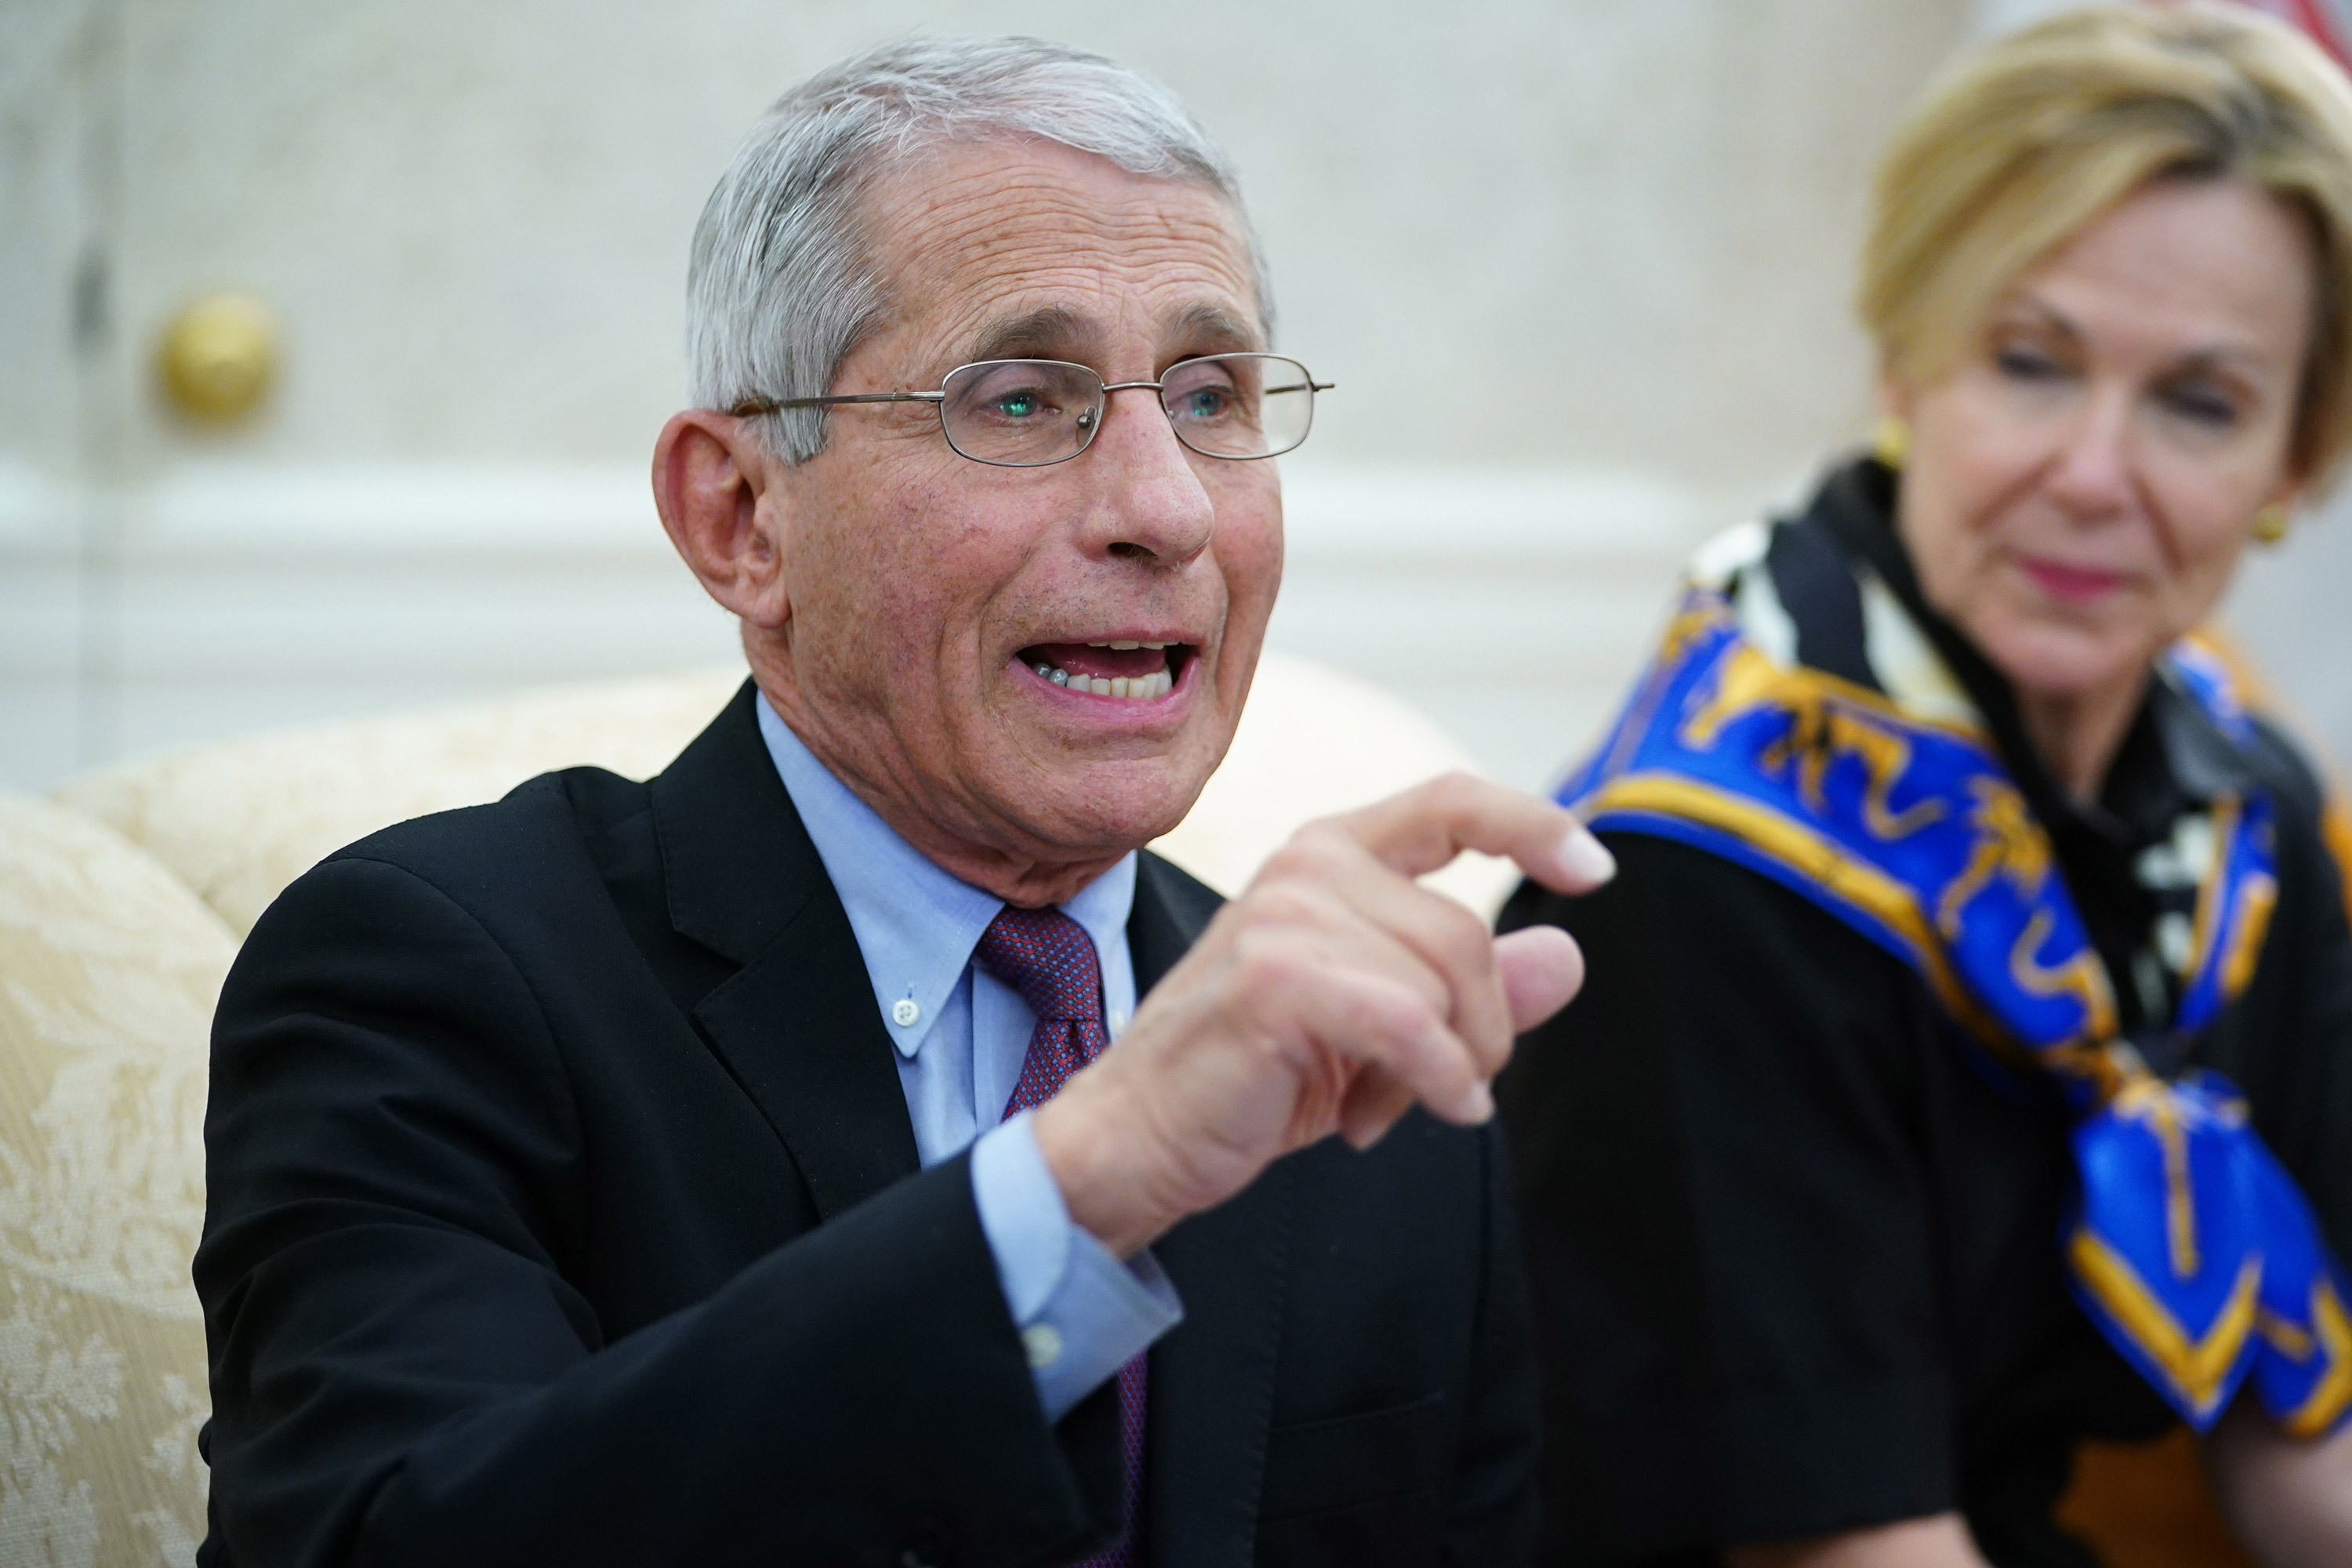 Dr. Anthony Fauci, left, director of the National Institute of Allergy and Infectious Diseases speaks during a meeting in the Oval Office of the White House in Washington on April 29.